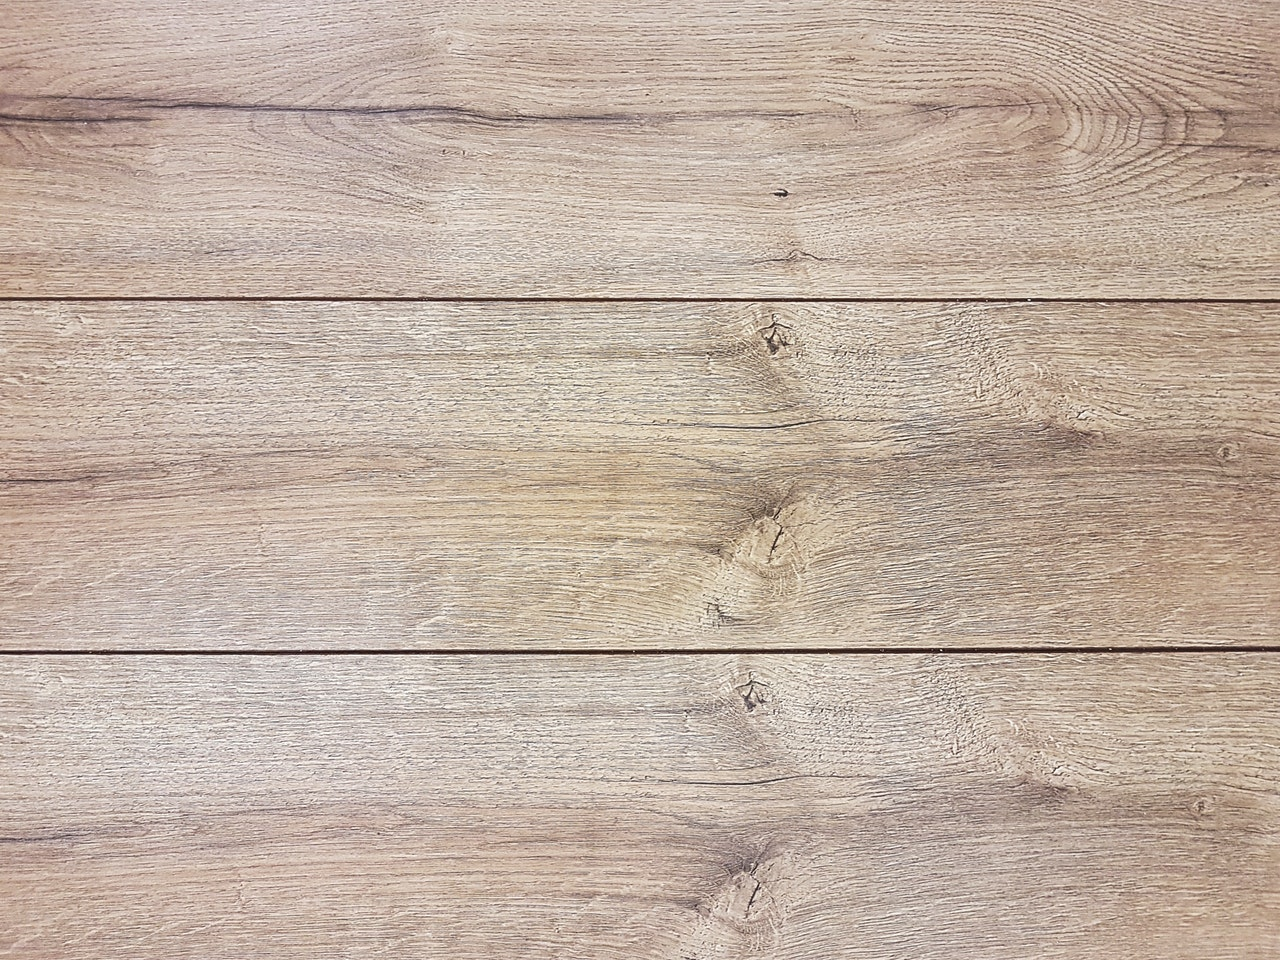 close-up photo of wood floor boards